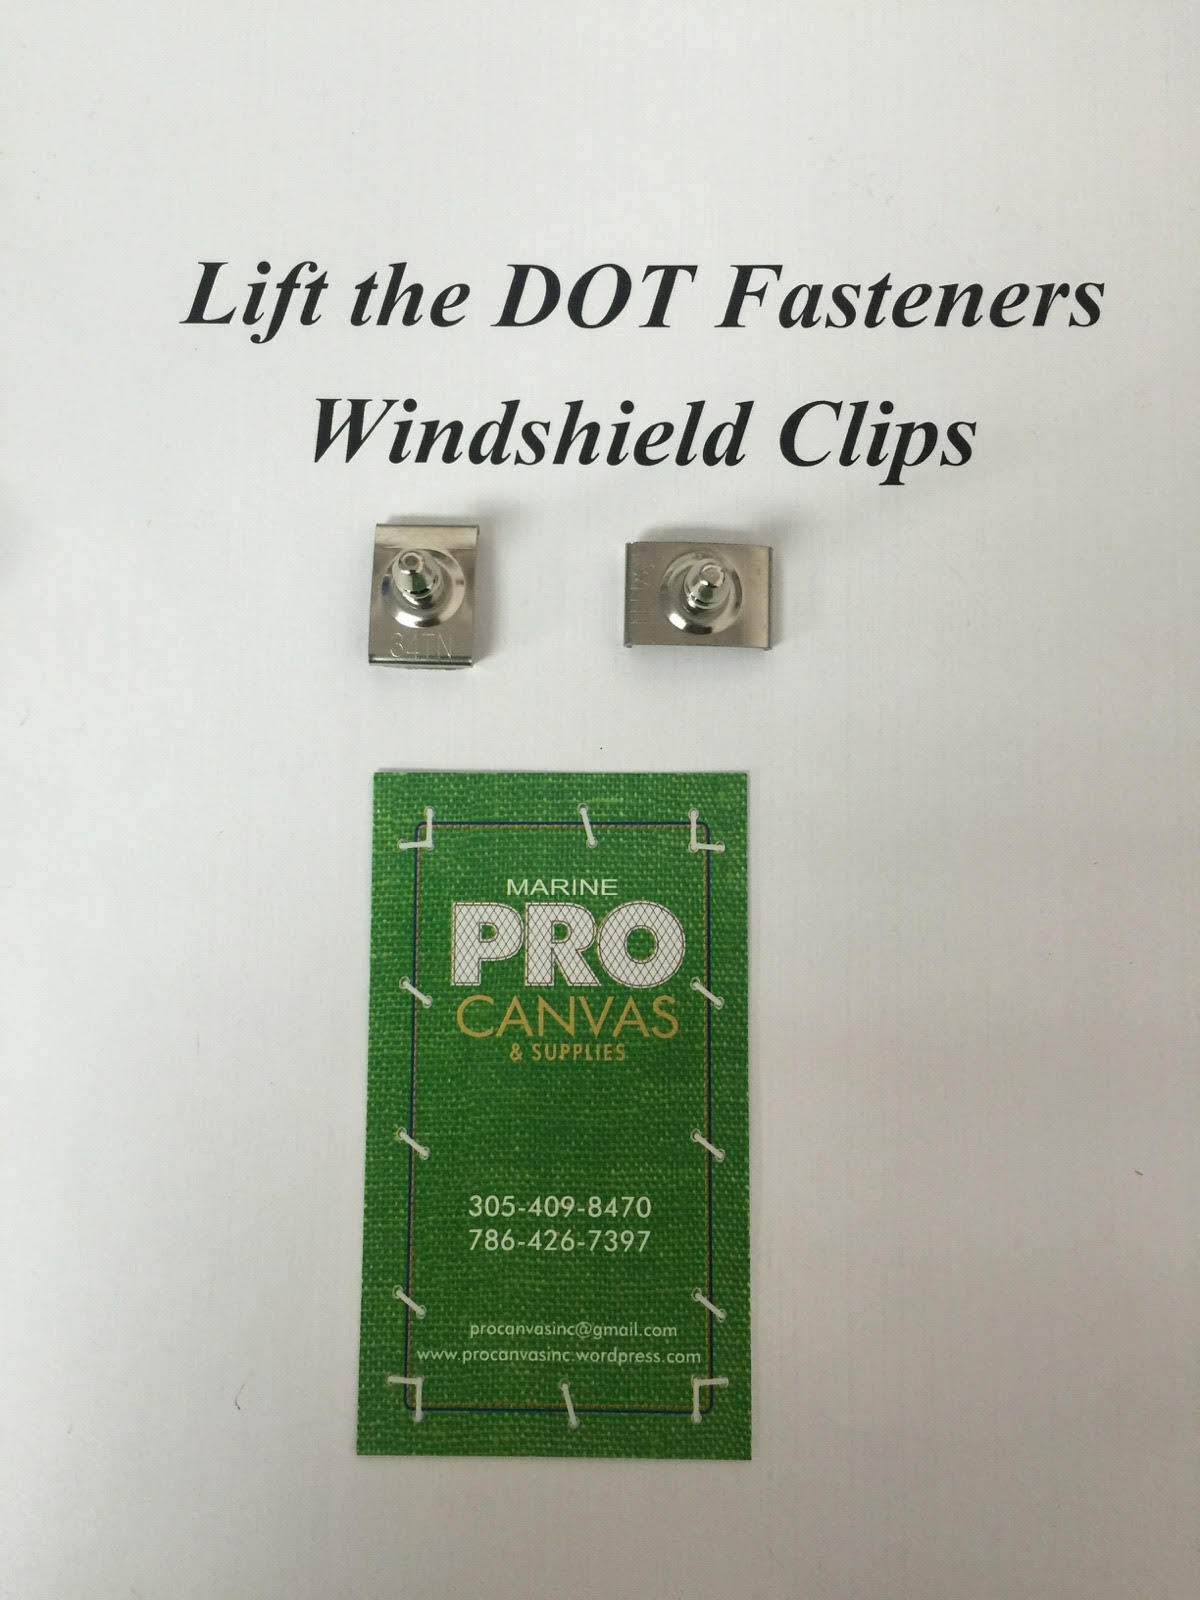 "Lift-the-Dot Fasteners Stainless Steel Windshield Clips 3/4"" 200 pieces"